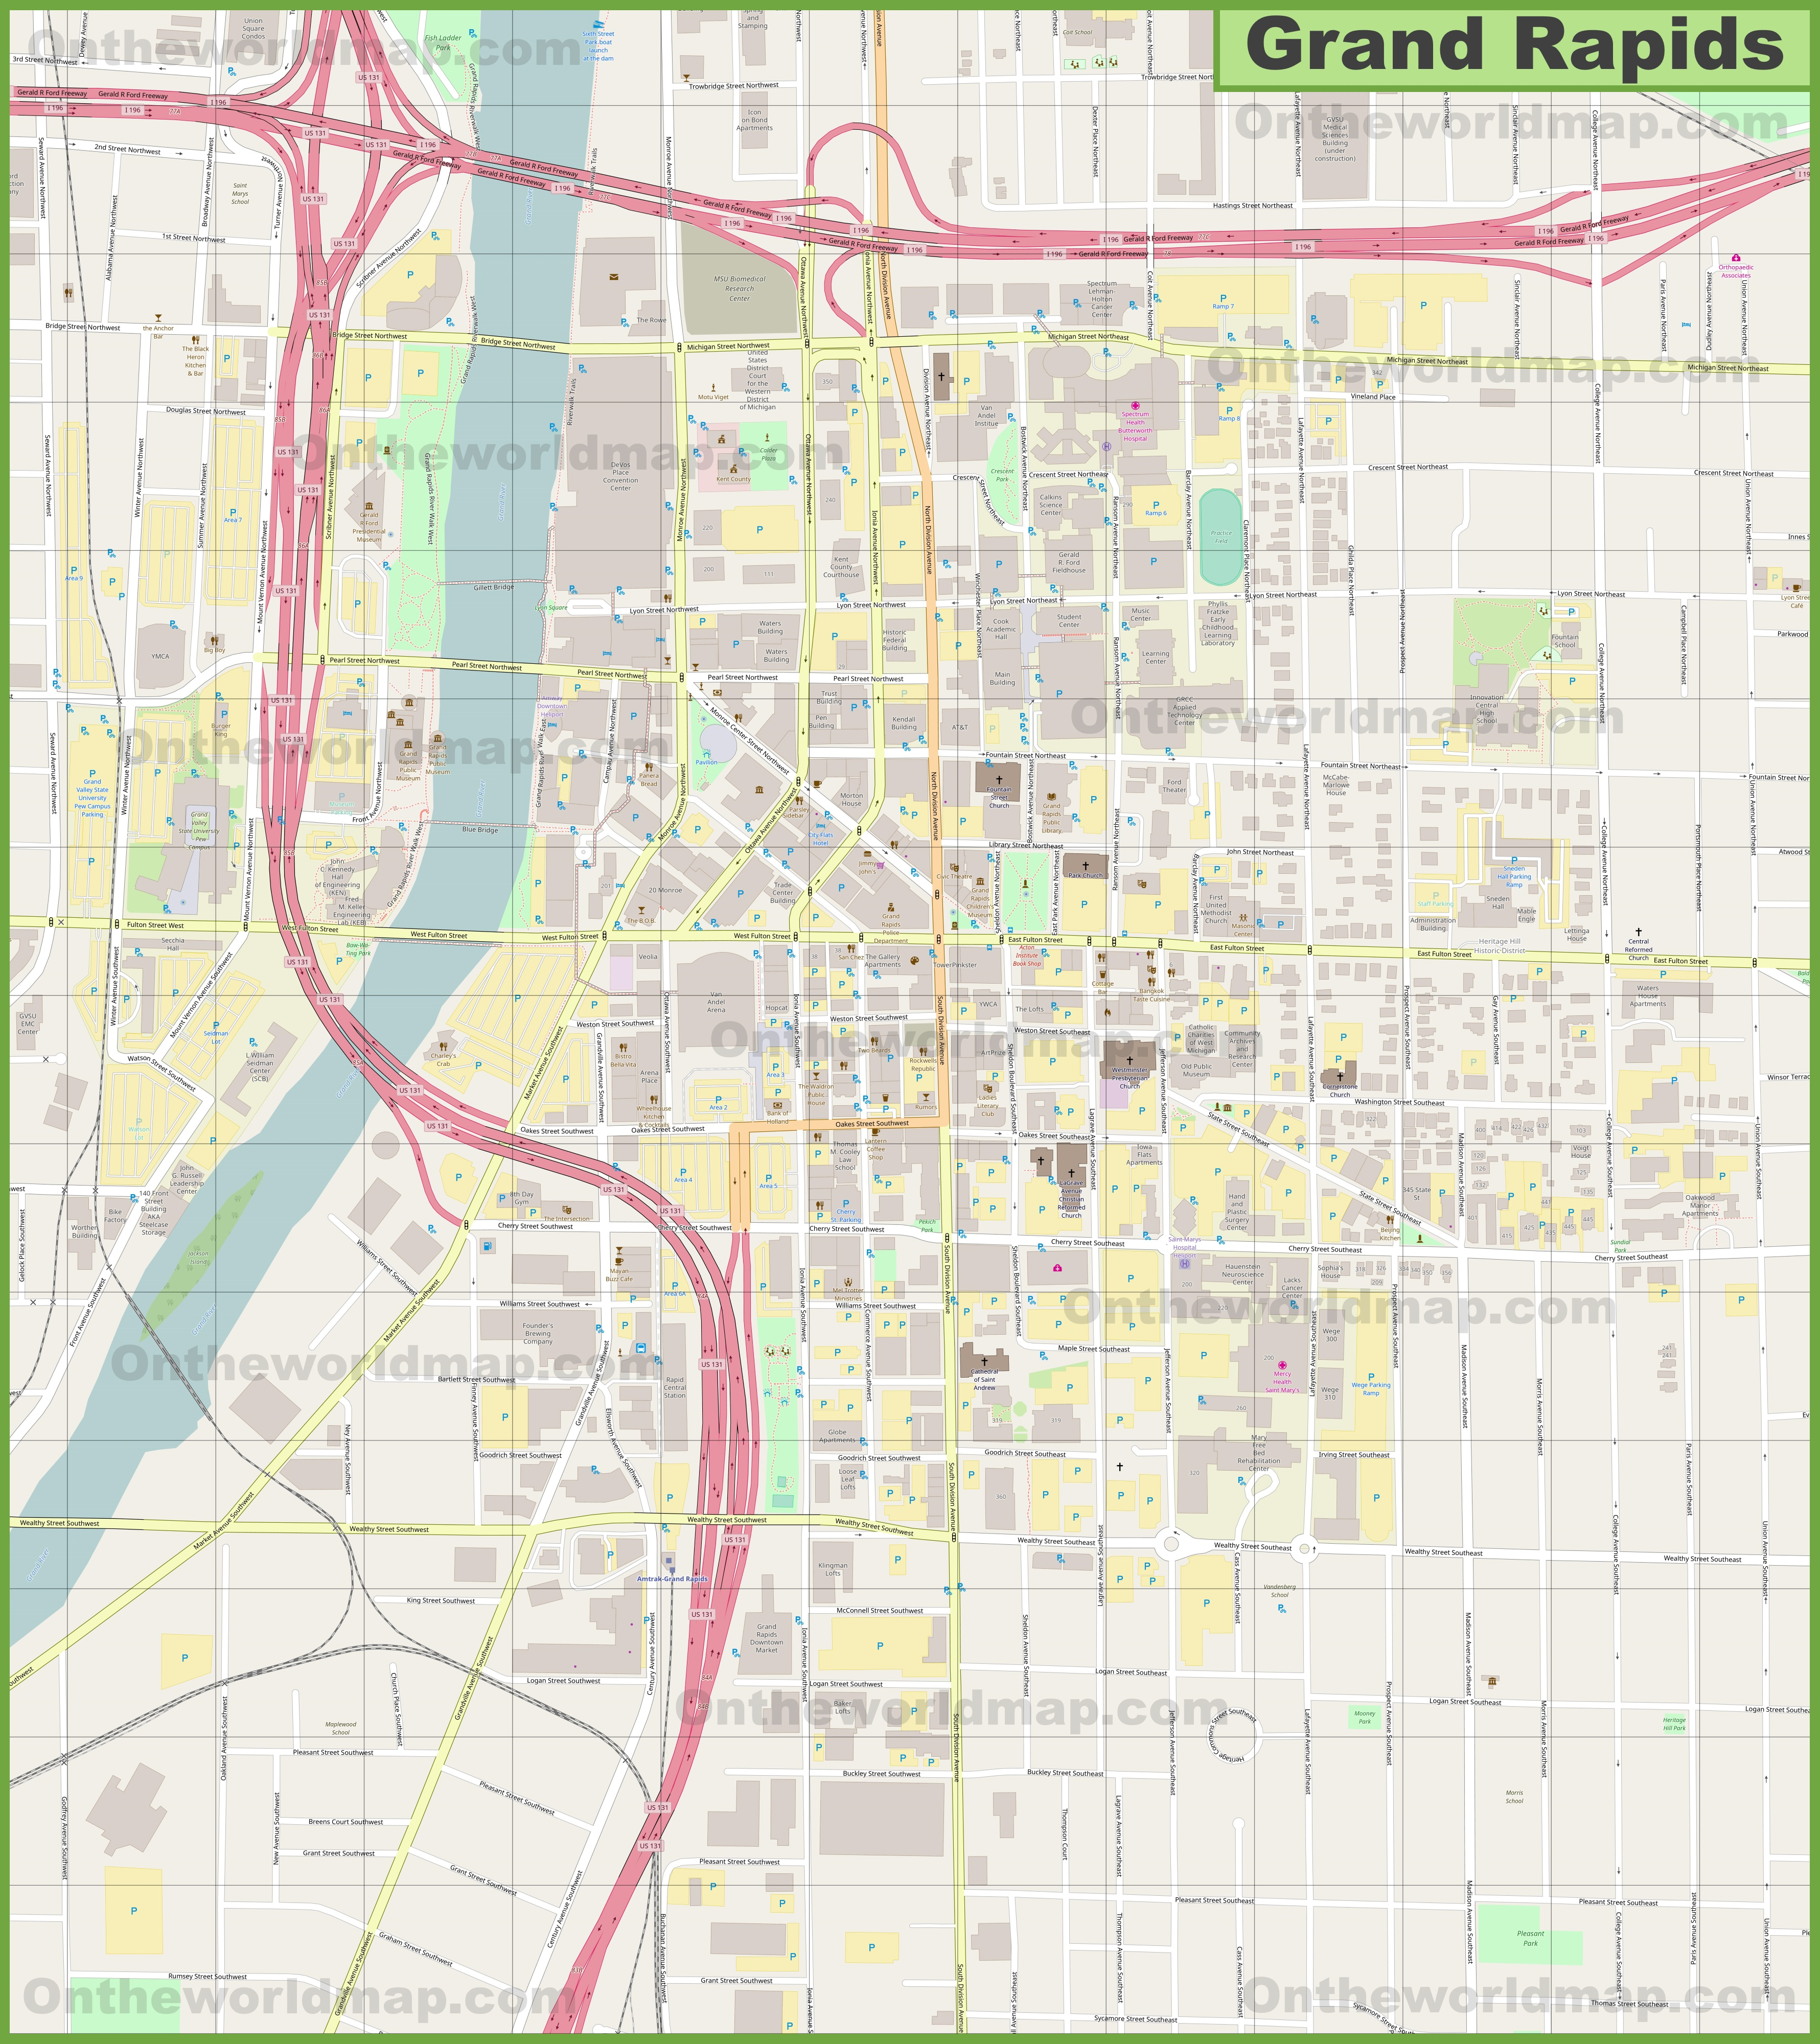 Grand Rapids downtown map